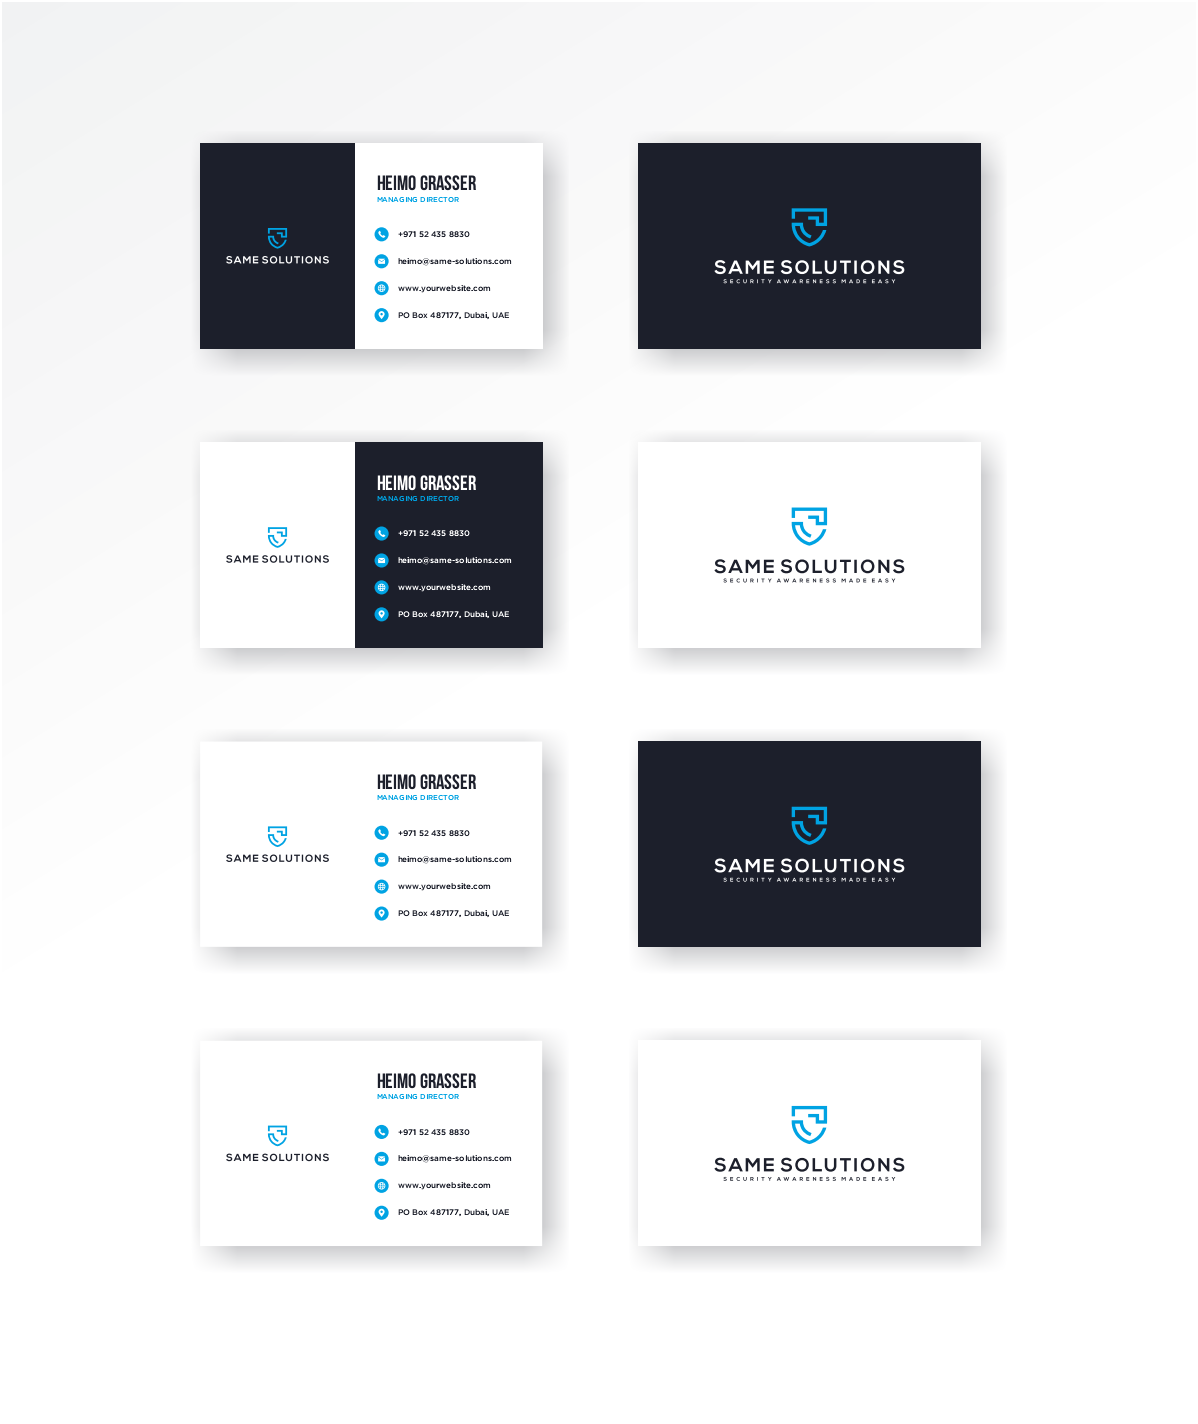 Branded documents based on logo